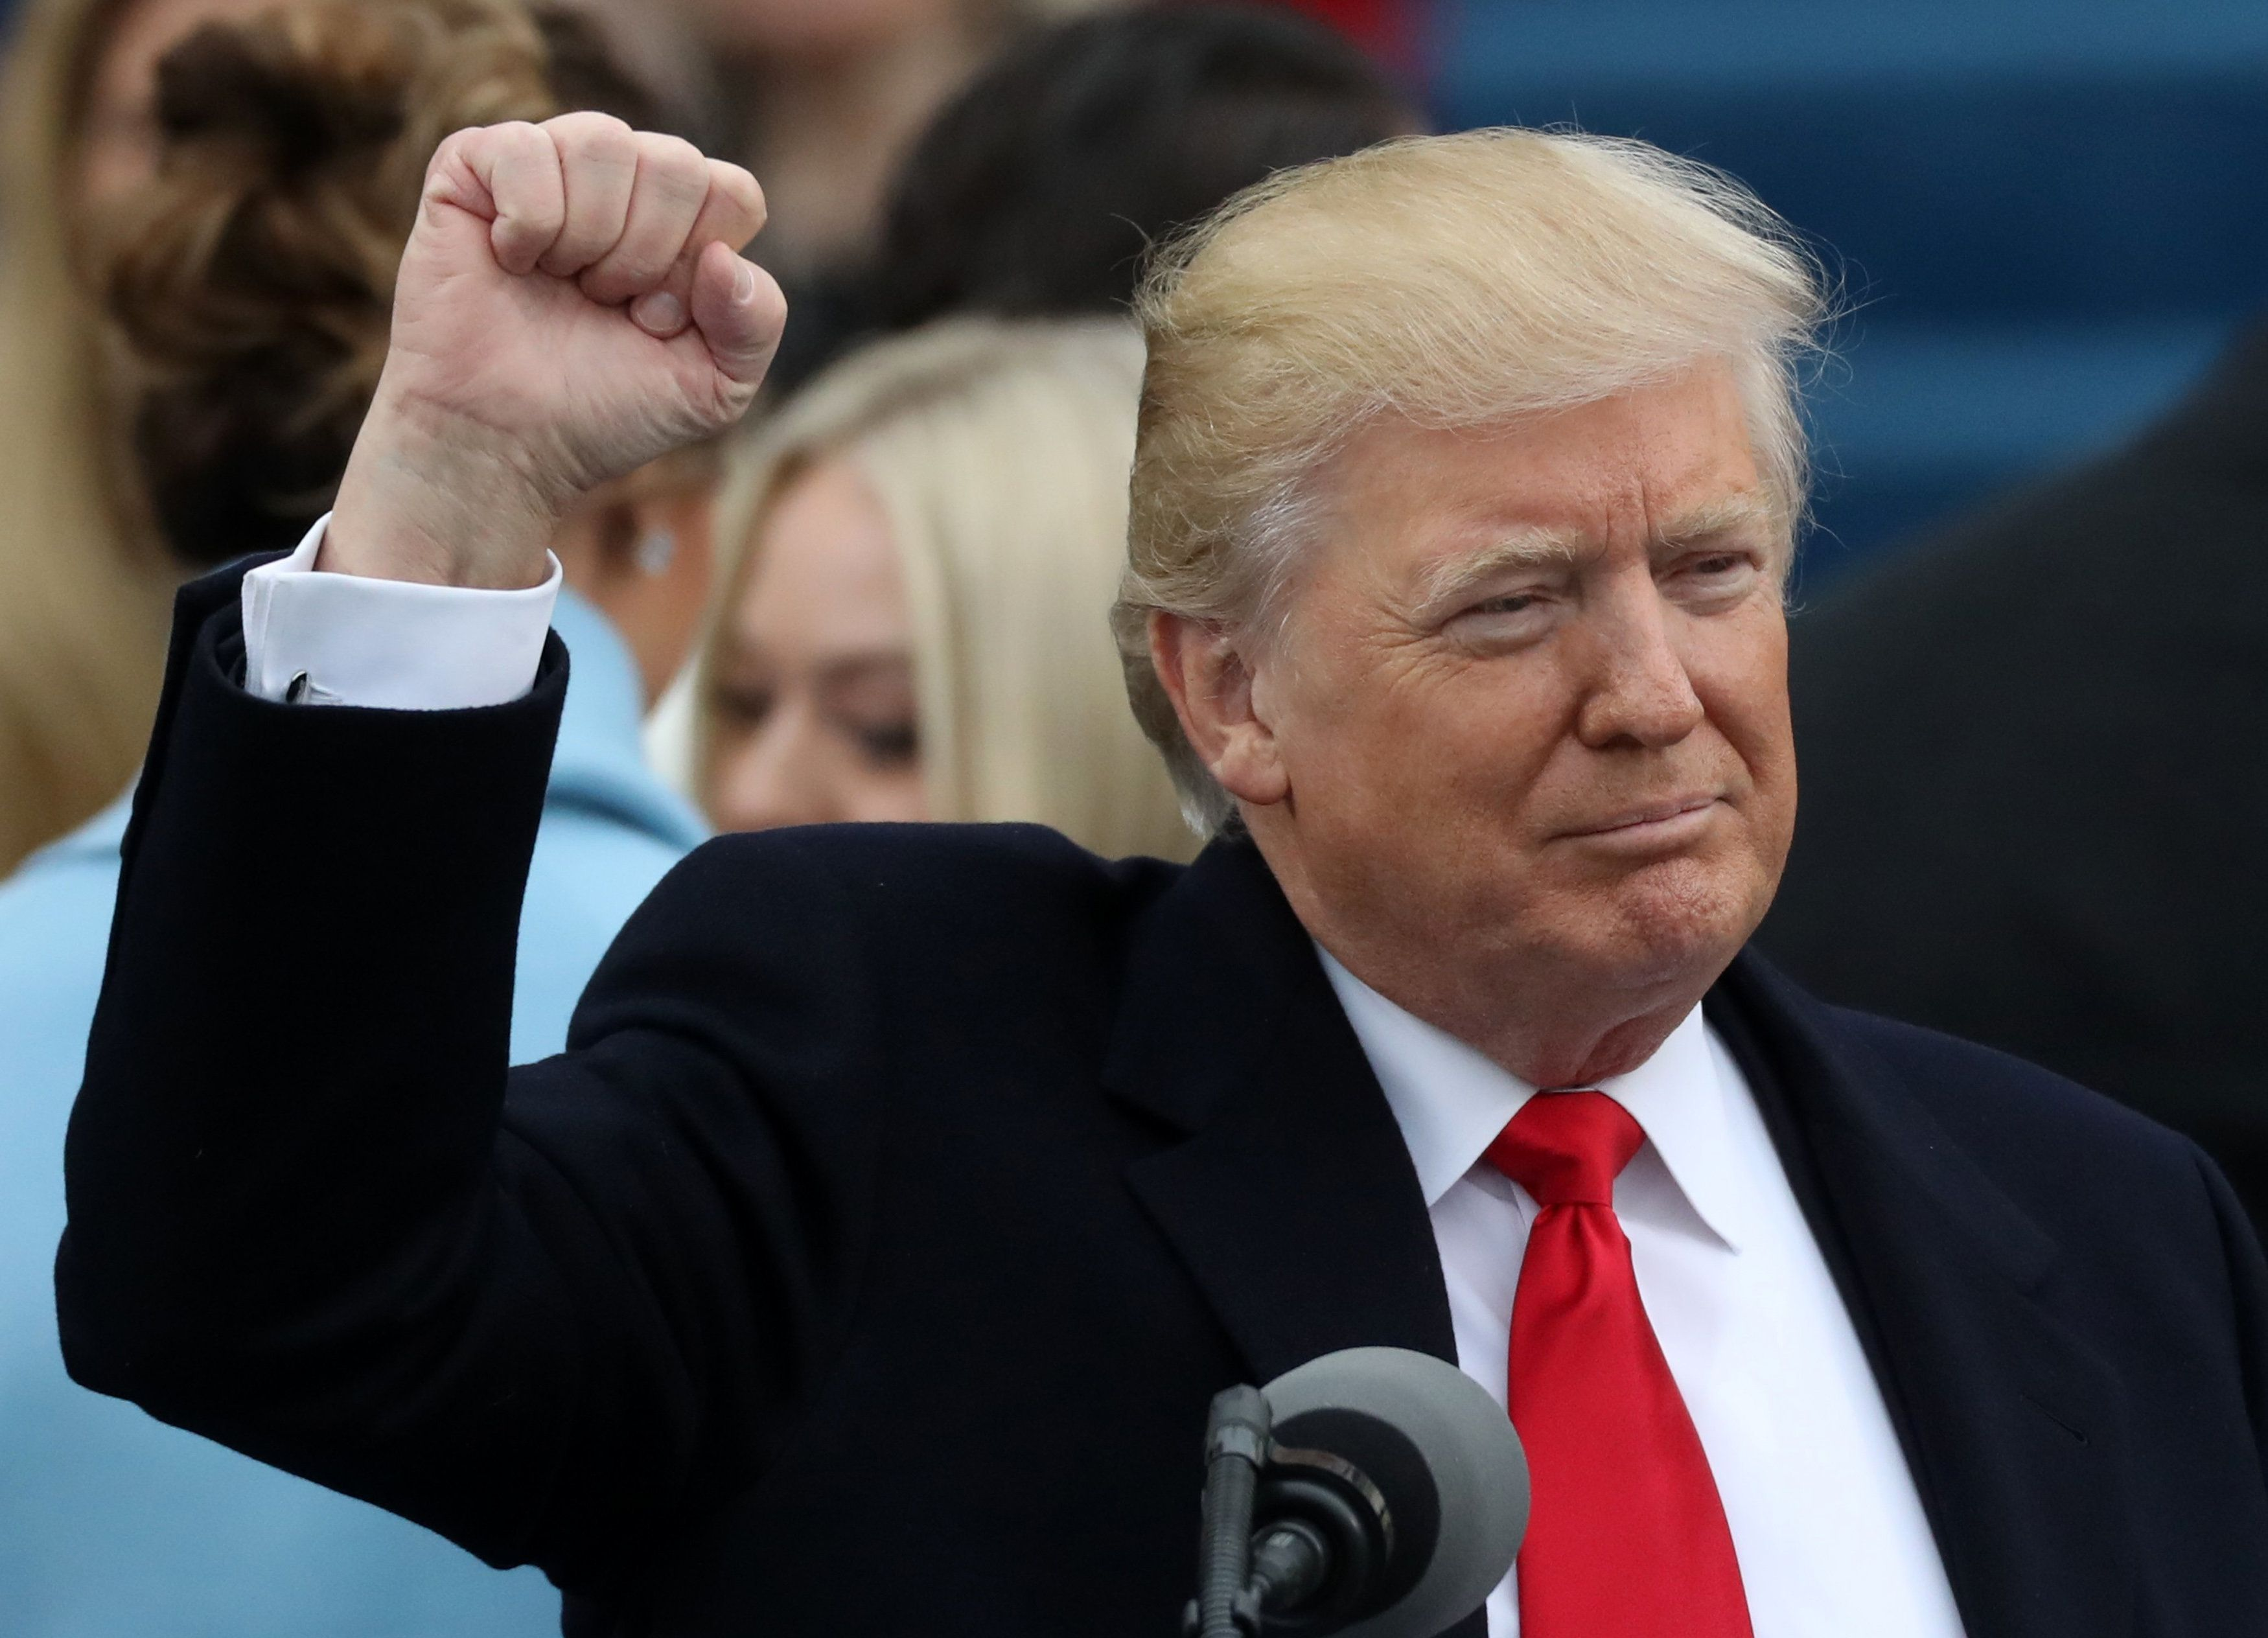 U.S. Donald Trump raises his fist after being sworn in as the 45th president of the United States on the West front of the U.S. Capitol in Washington, U.S., January 20, 2017. REUTERS/Carlos Barria